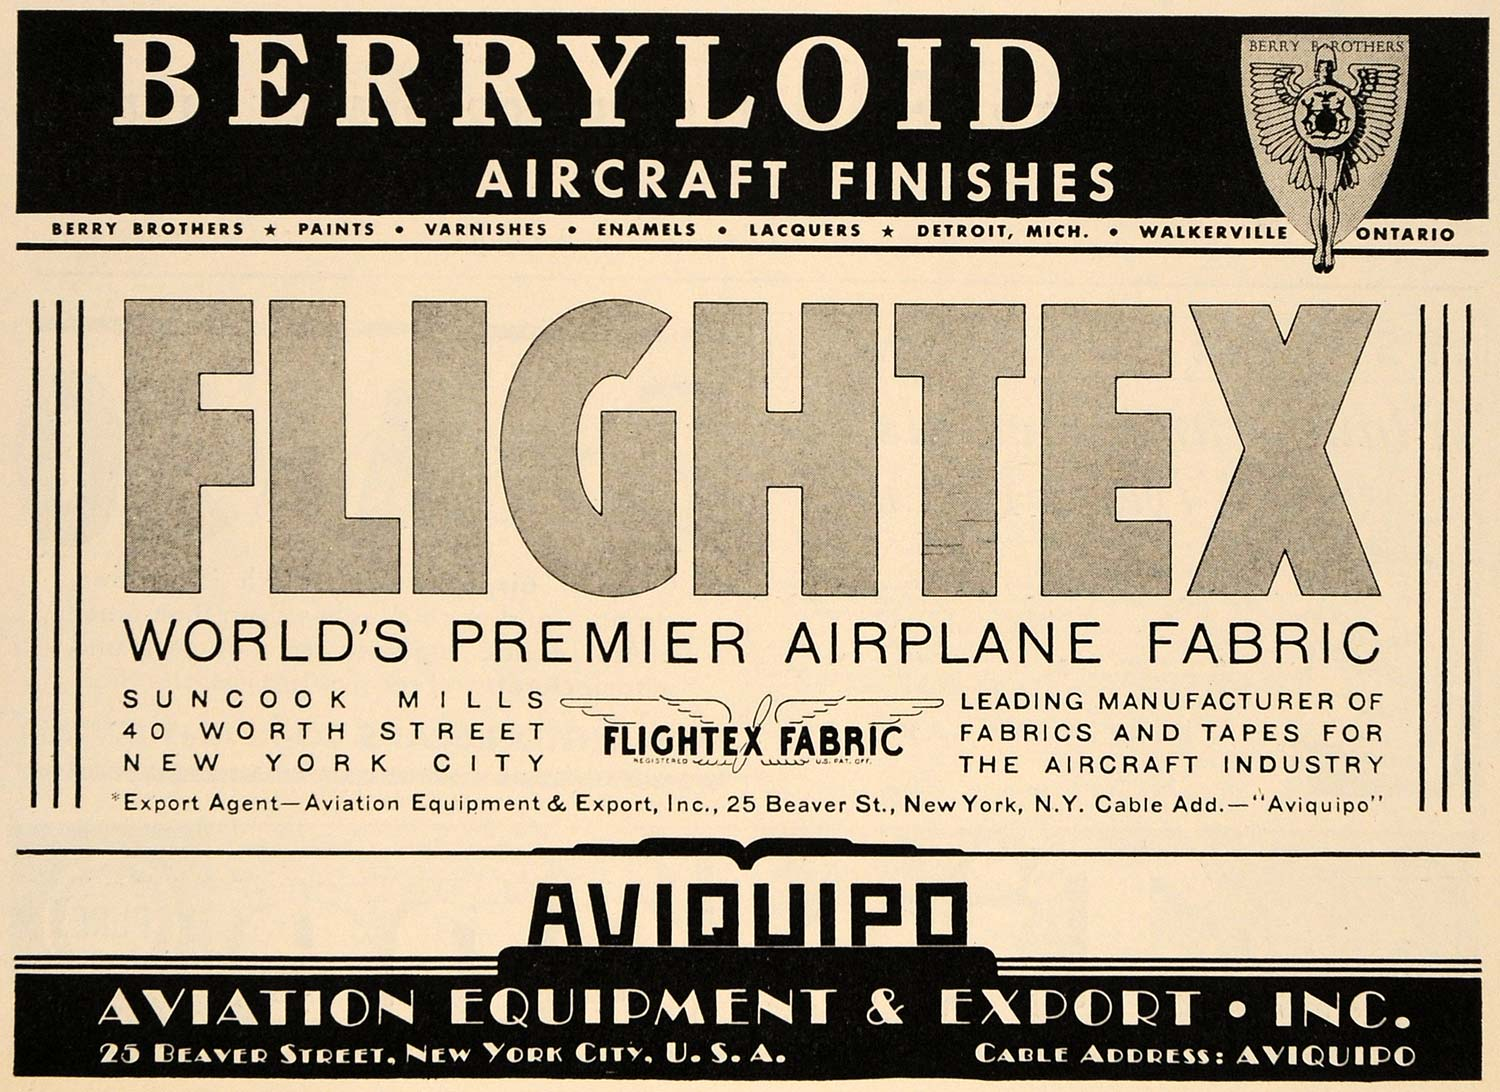 1938 Ad Berryloid Flightex Aircraft Finishes Fabrics - ORIGINAL ADVERTISING FLY1